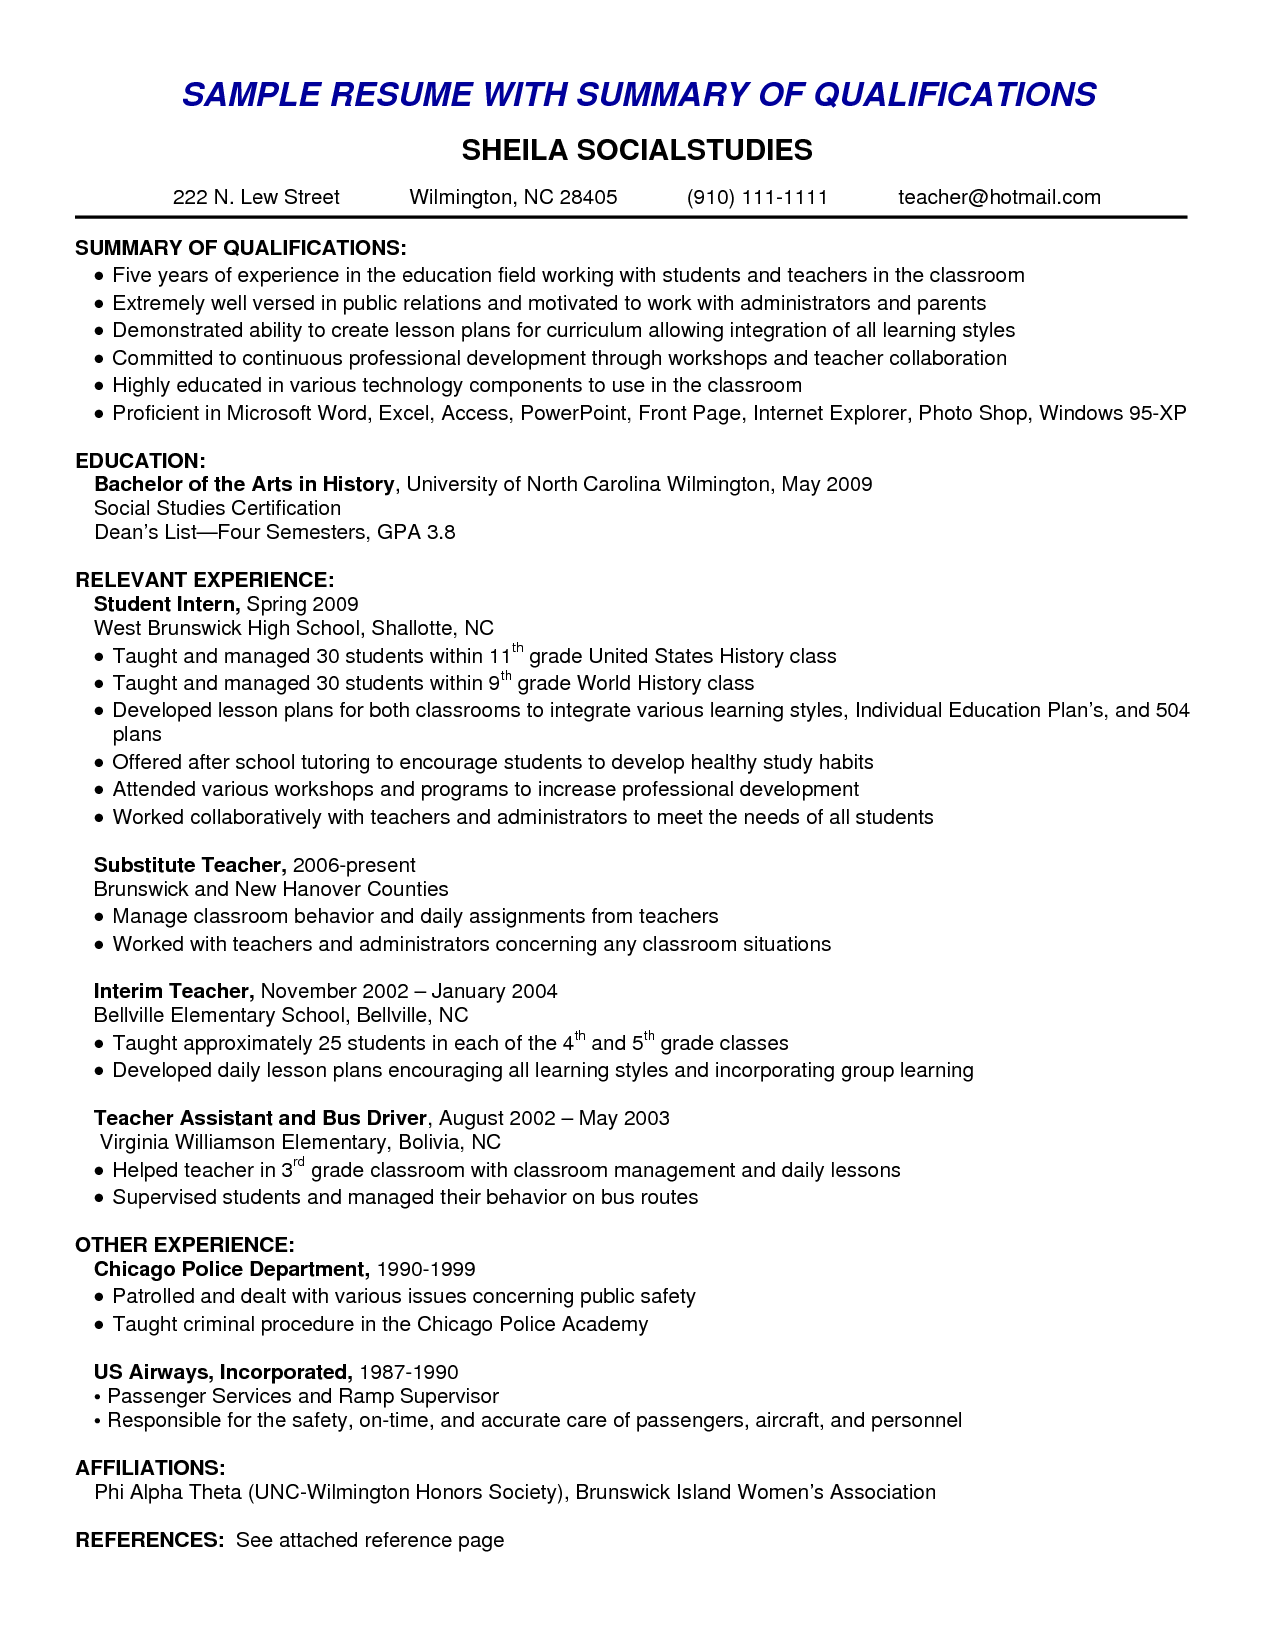 Skills Example For Resume Qualifications For Resume Example  Httpwww.resumecareer .